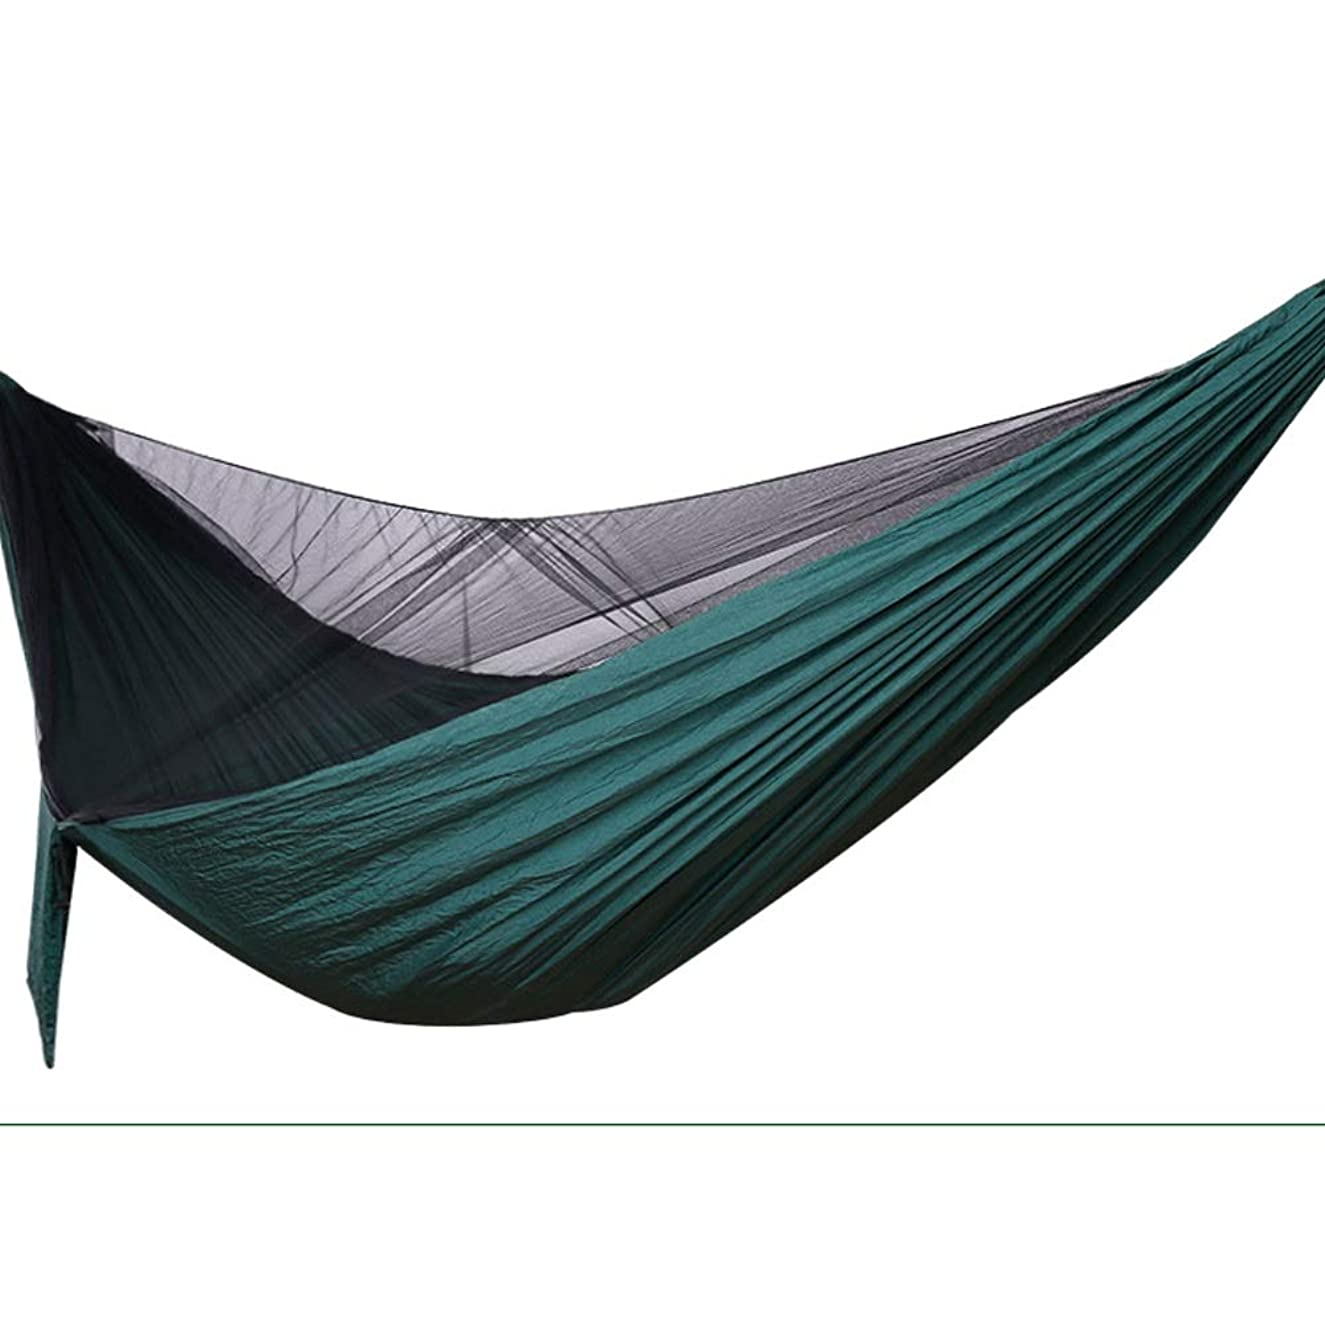 Mosquito Net for Single Camping Bed, Hammock with Mosquito Net, Hammock with Mosquito Net and Cover, with Accessories/Suitable for Camping, Beach